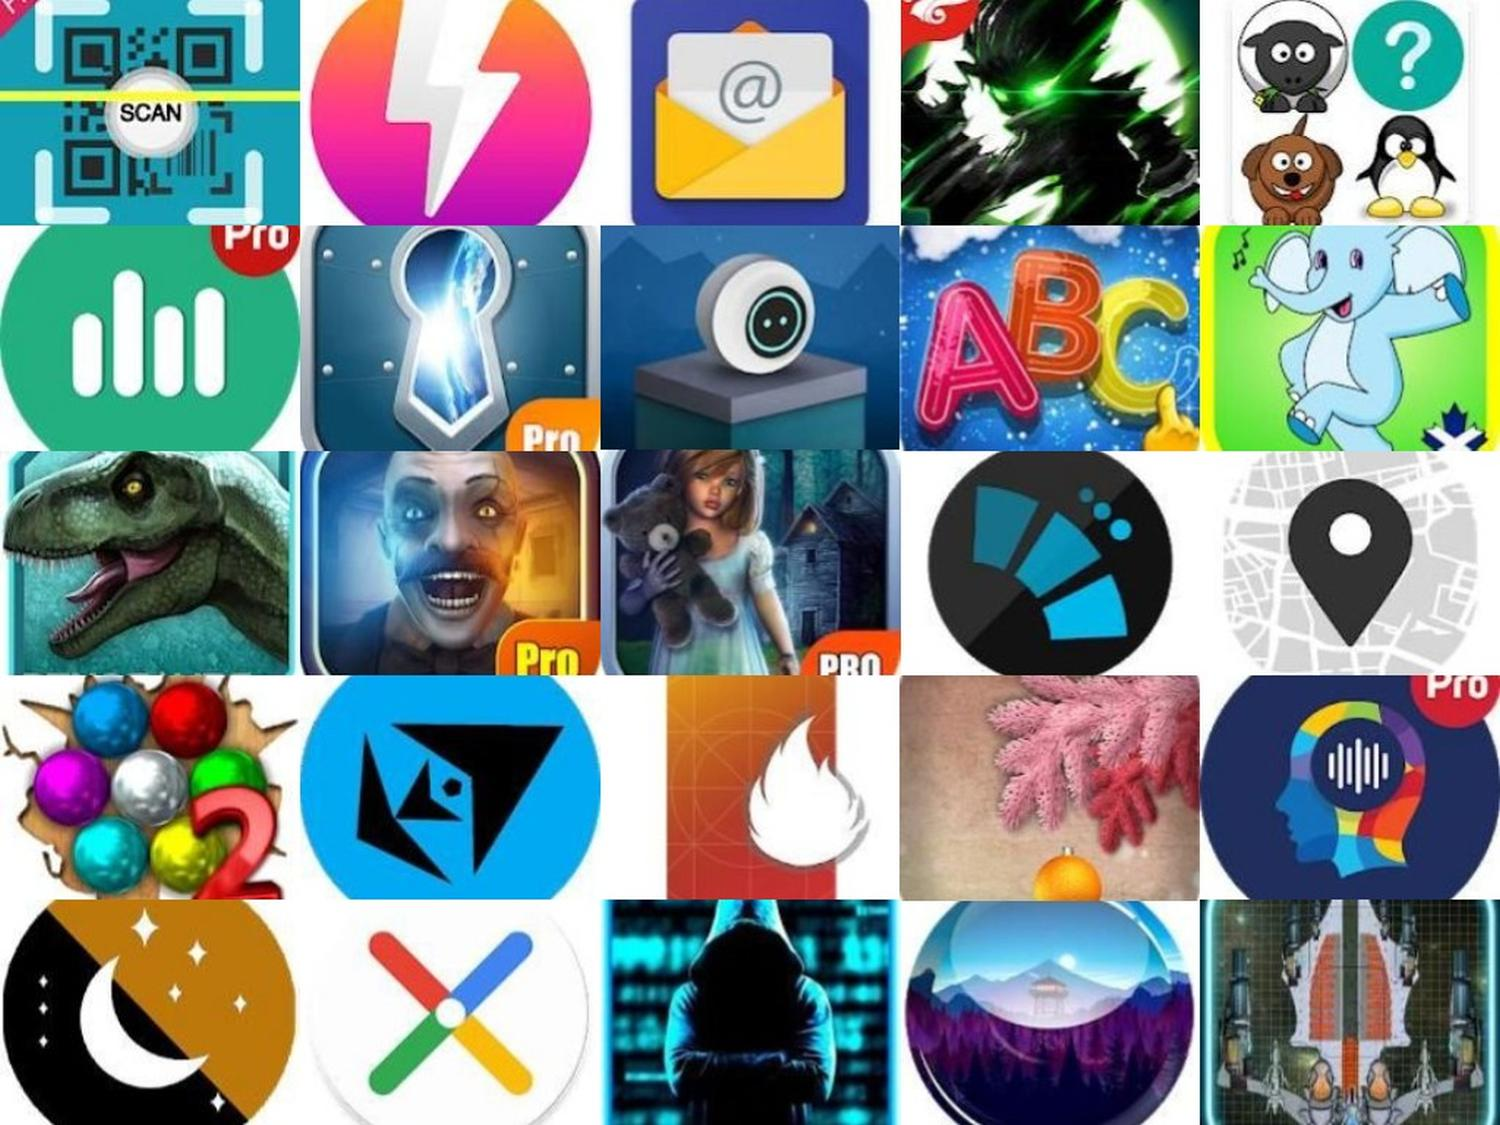 Google Play Store Aktion: Diese 61 Android-Apps, Spiele, Icon Packs & Live Wallpaper gibt es heute Gratis - GWB